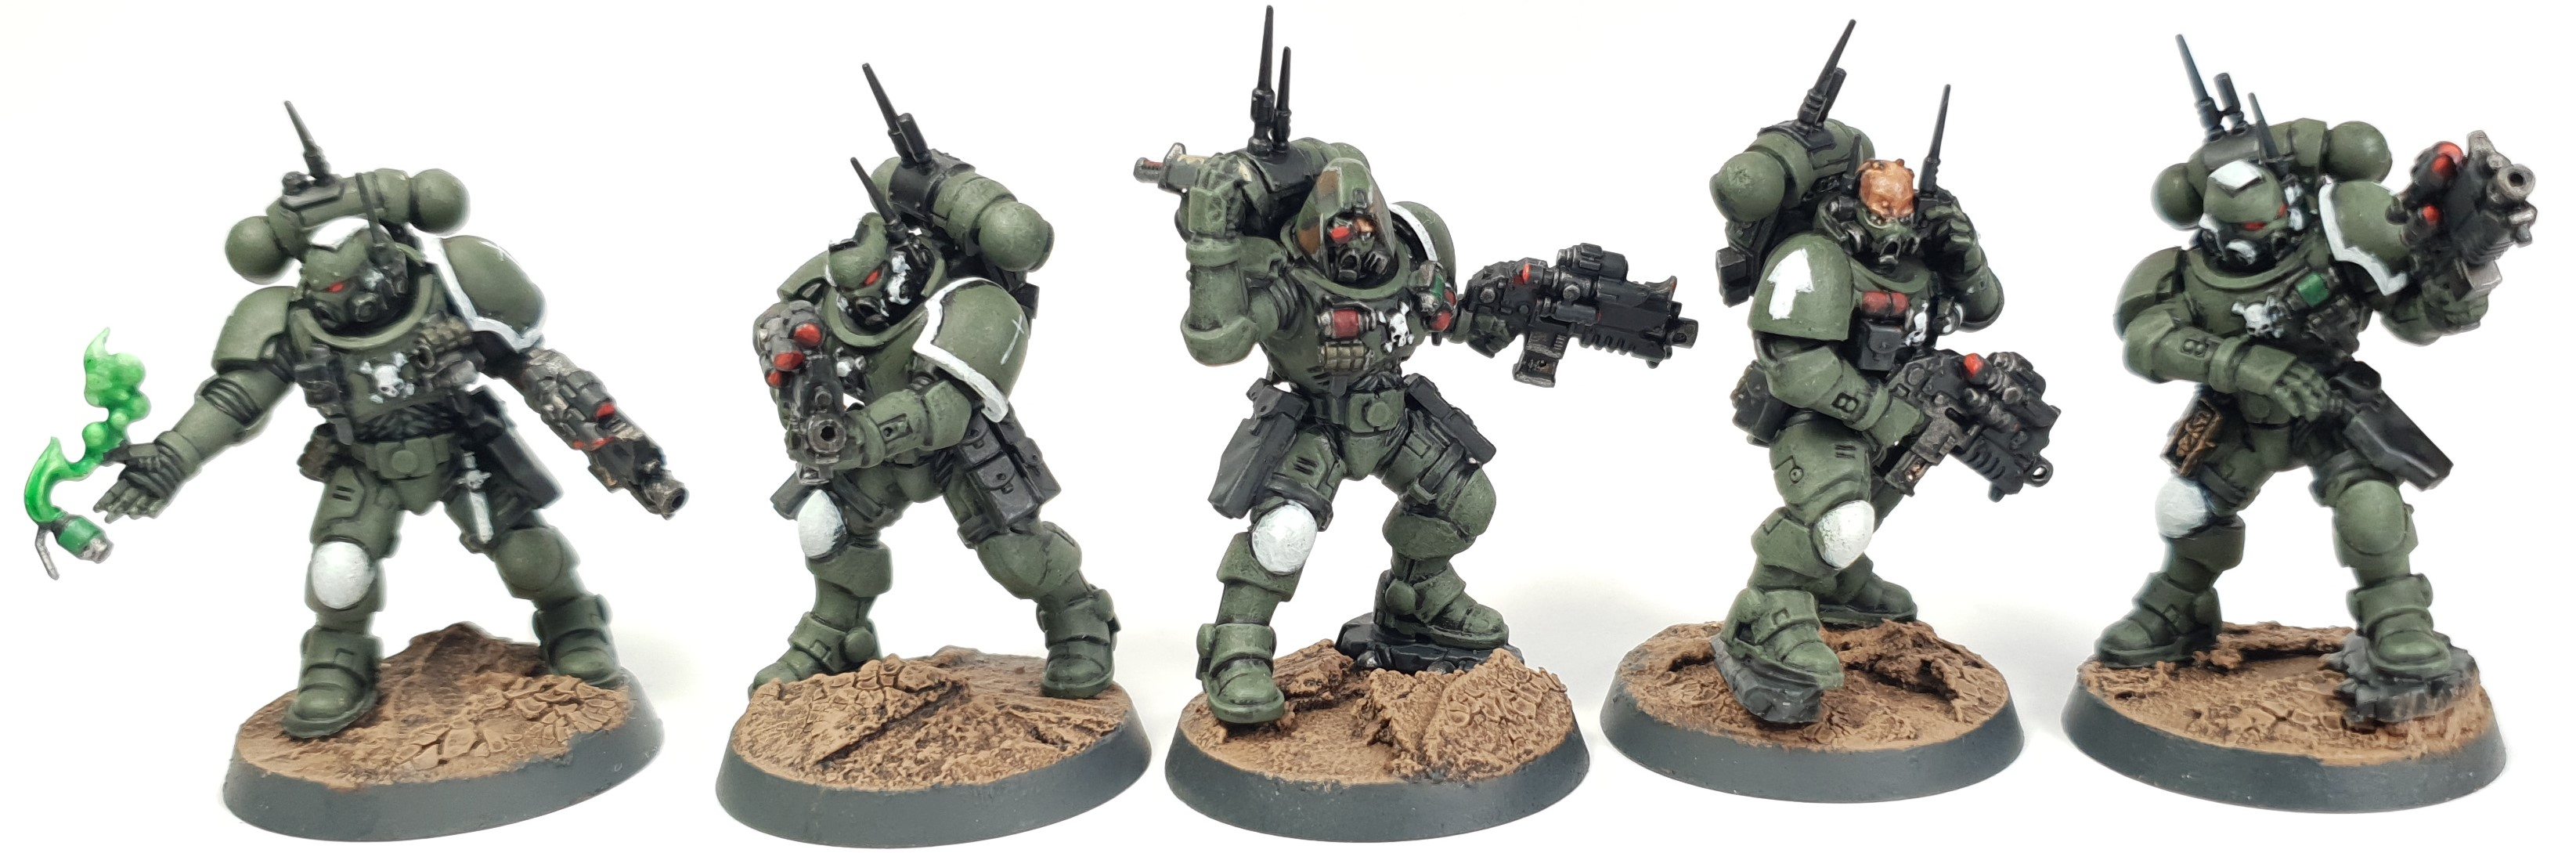 Swords of Davion Space Marine Infiltrator Squad Vortimer